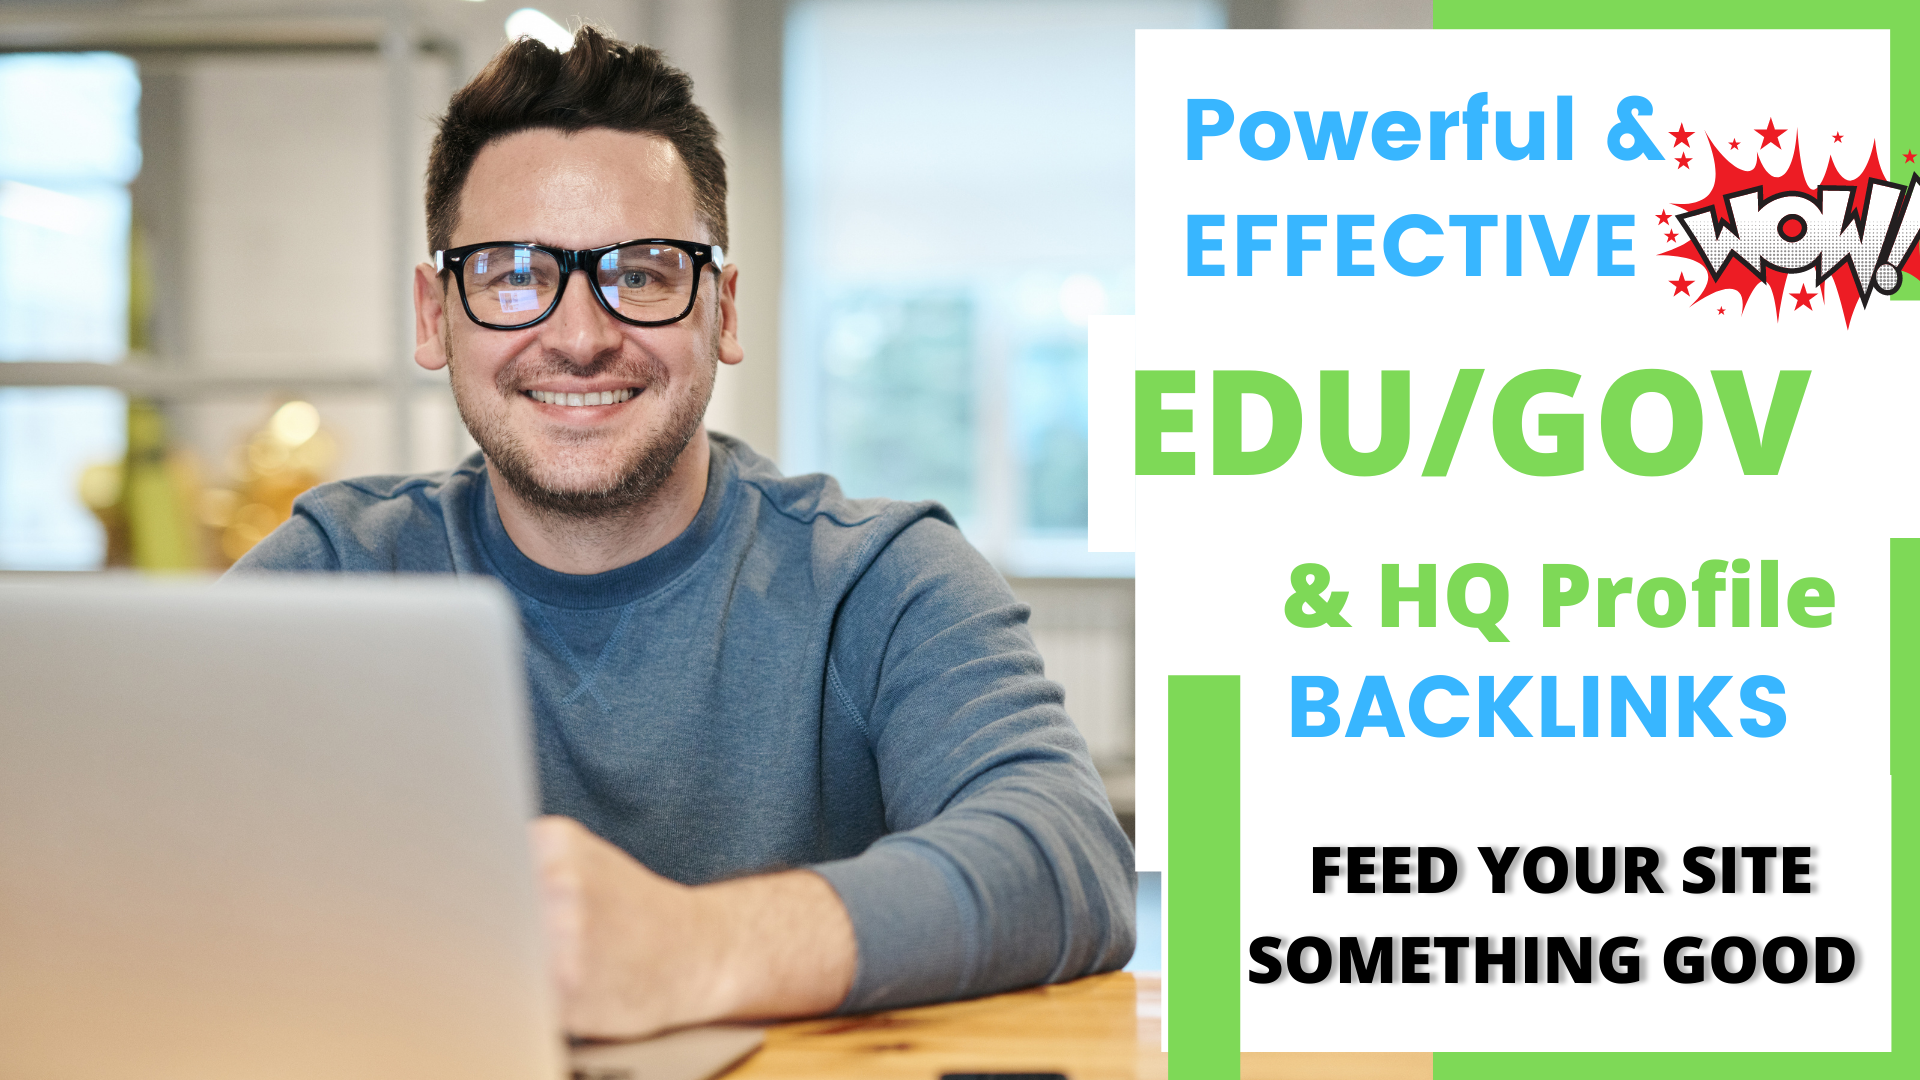 Powerful & Effective 17 plus EDU/GOV & 50 HQ profile back-links. Feed your site something good